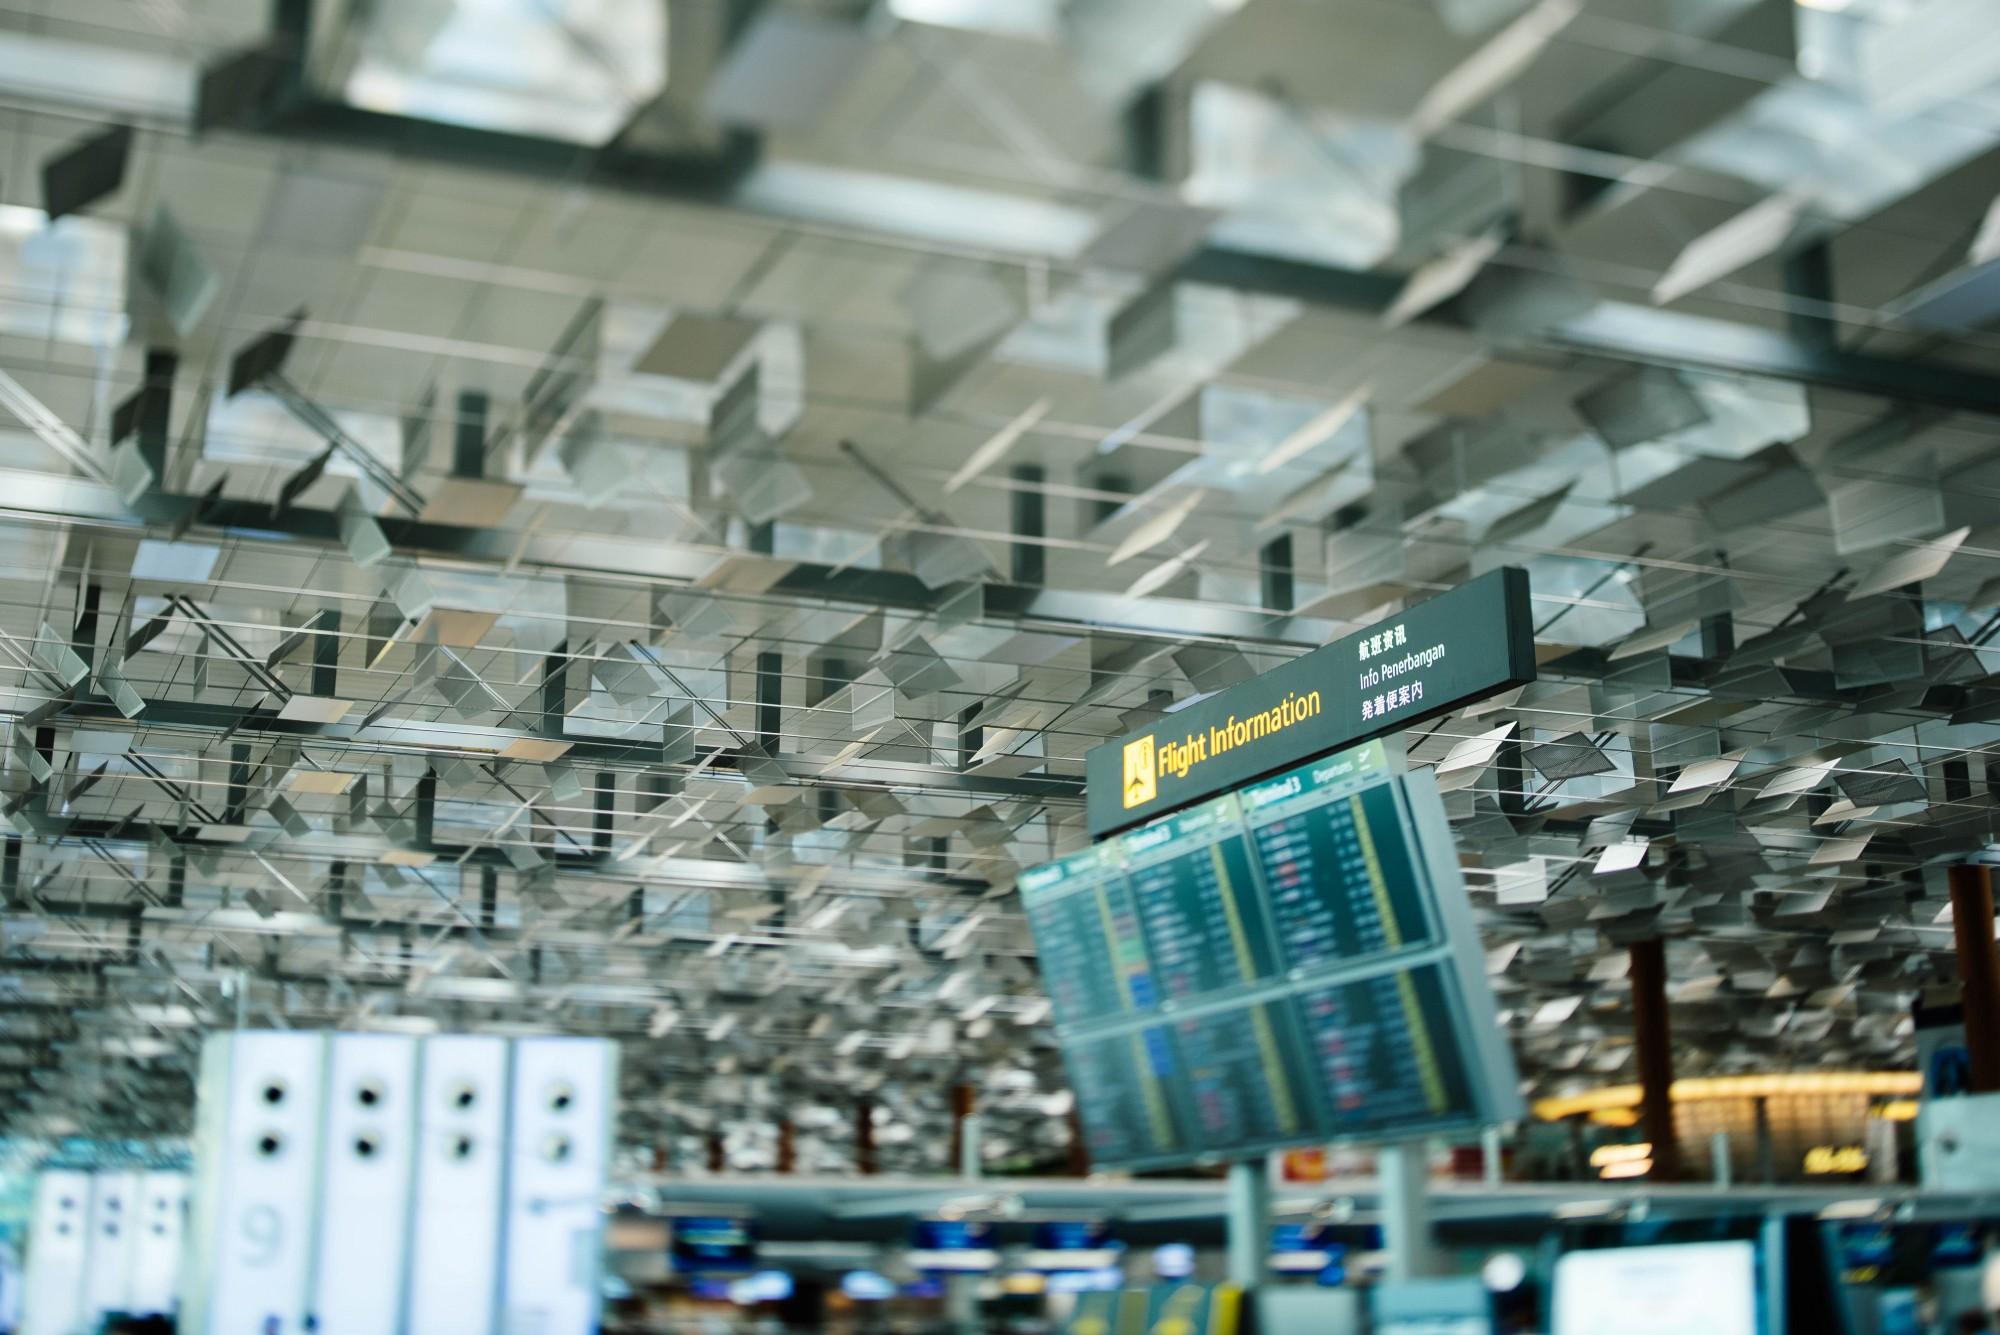 A visual display at an Airport terminal showing the Flight Arrival and Departure Information.